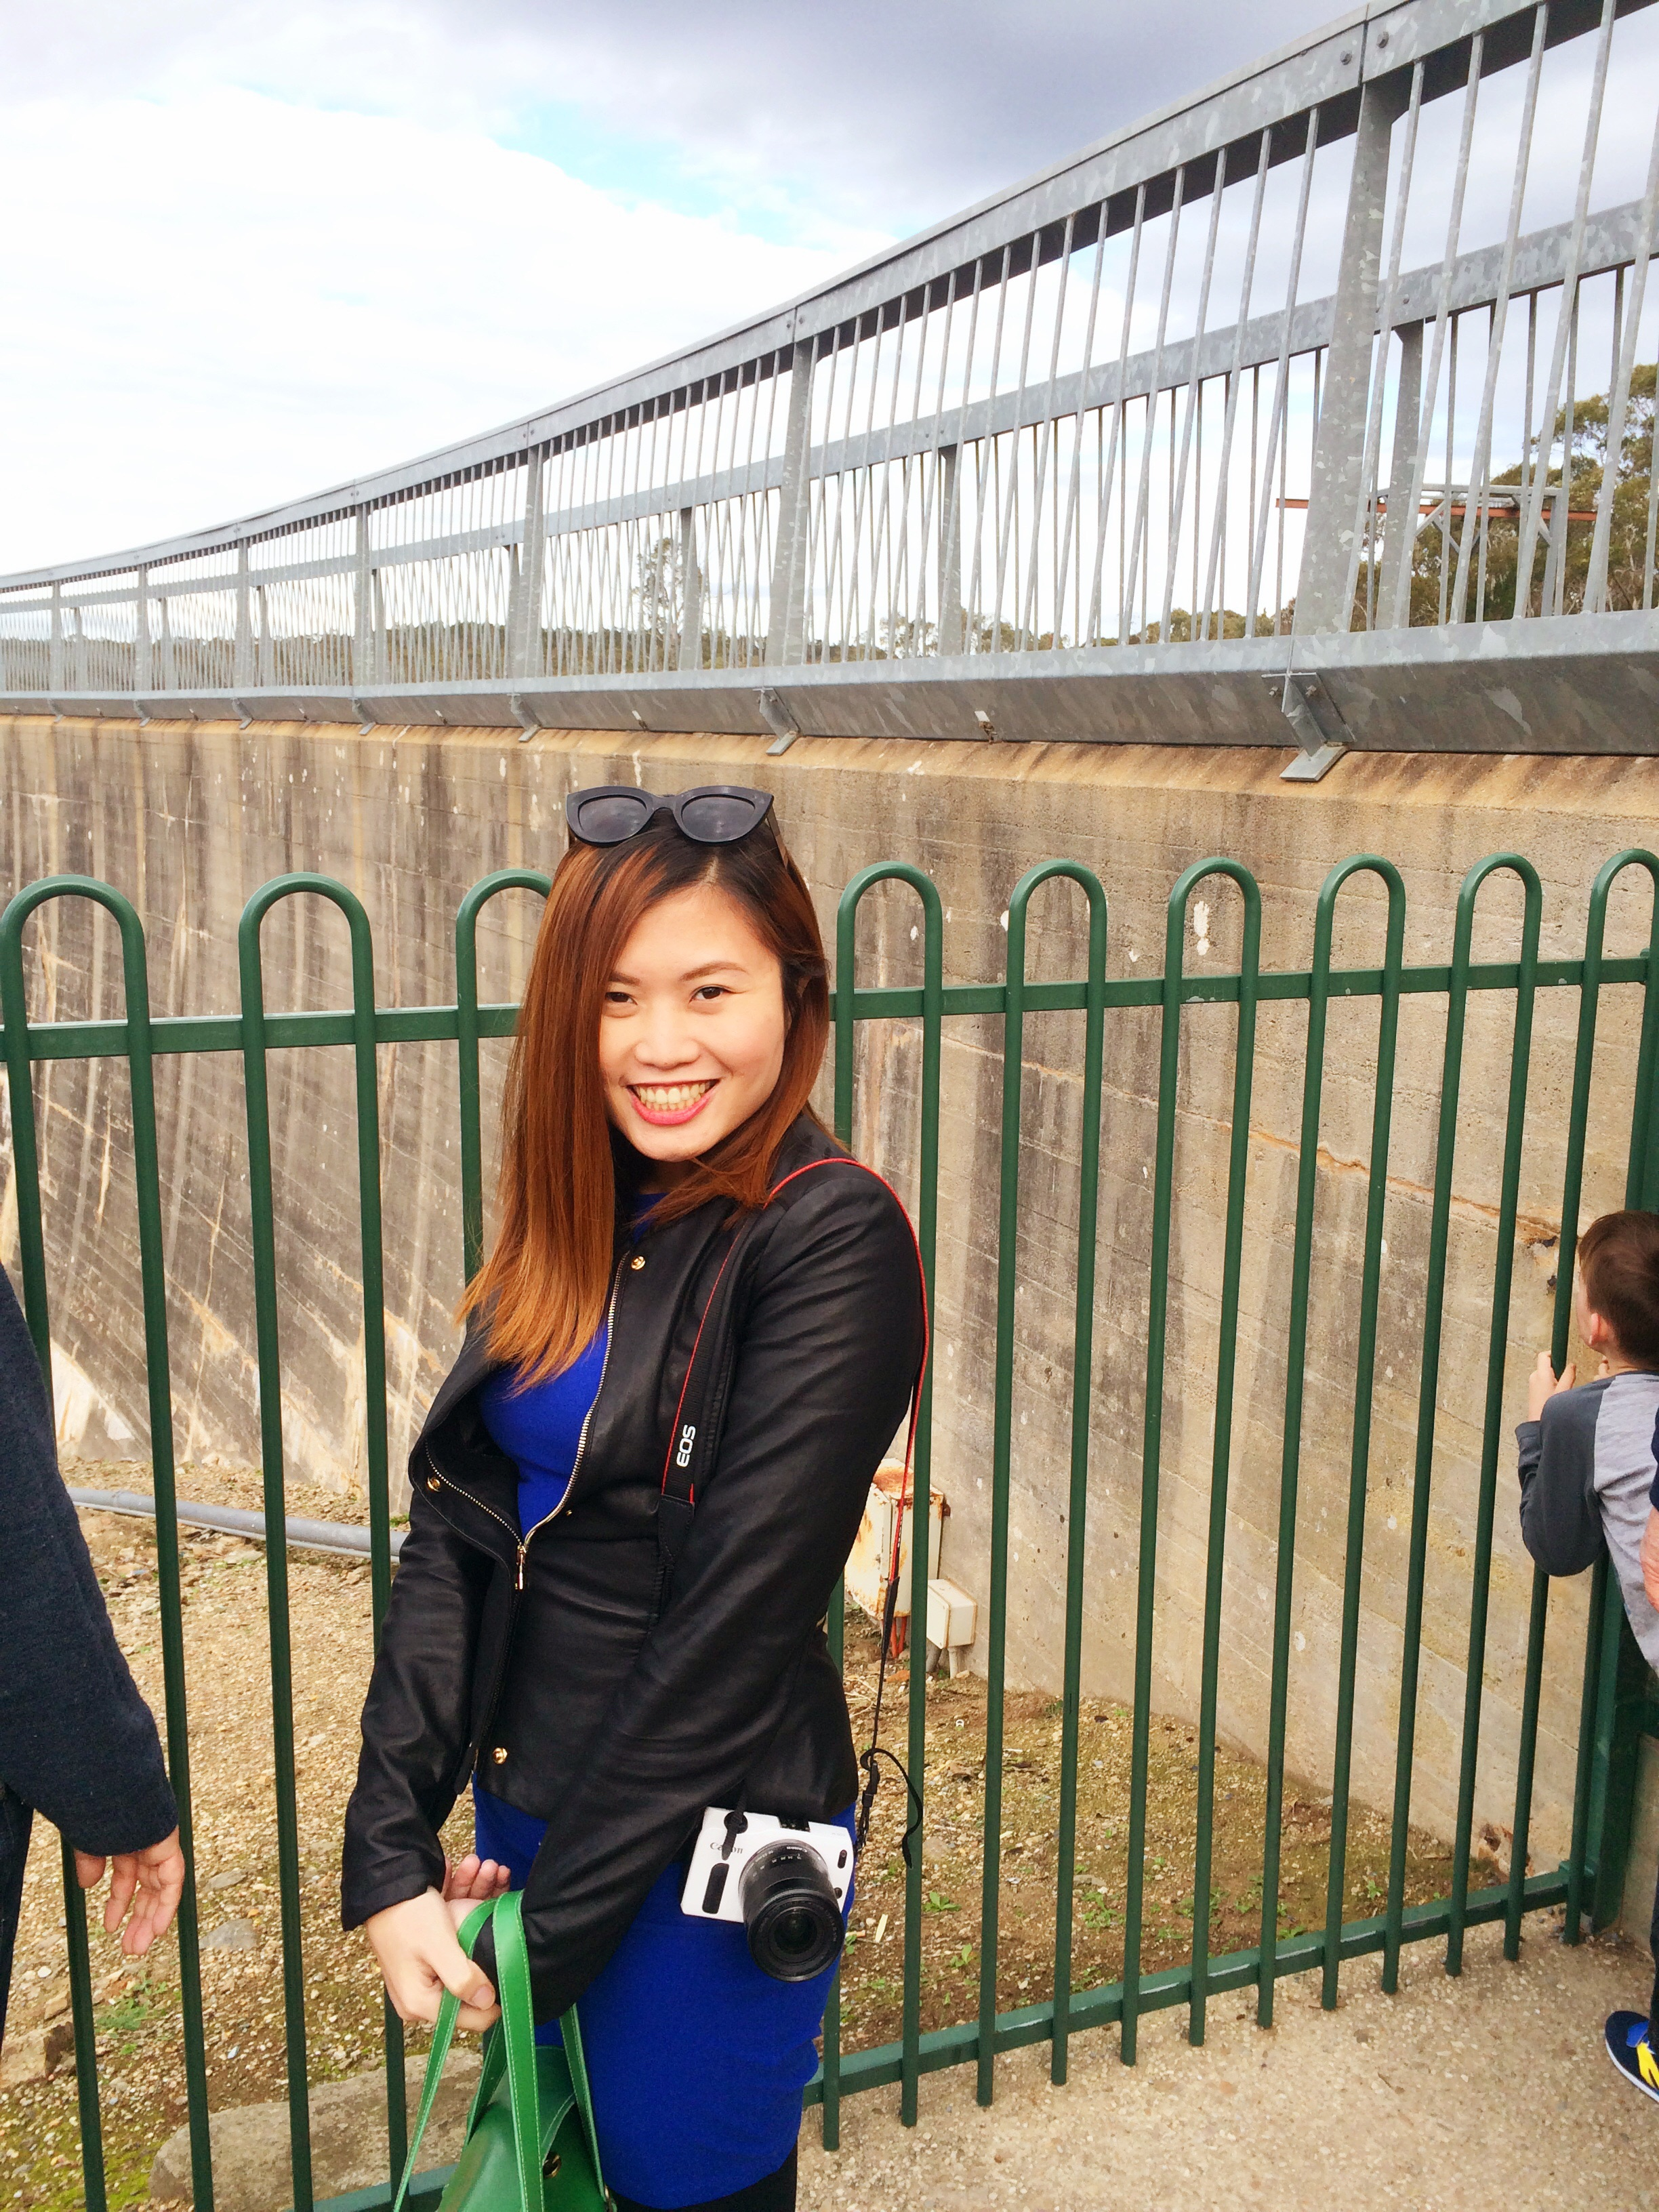 At Whispering Wall in Adelaide